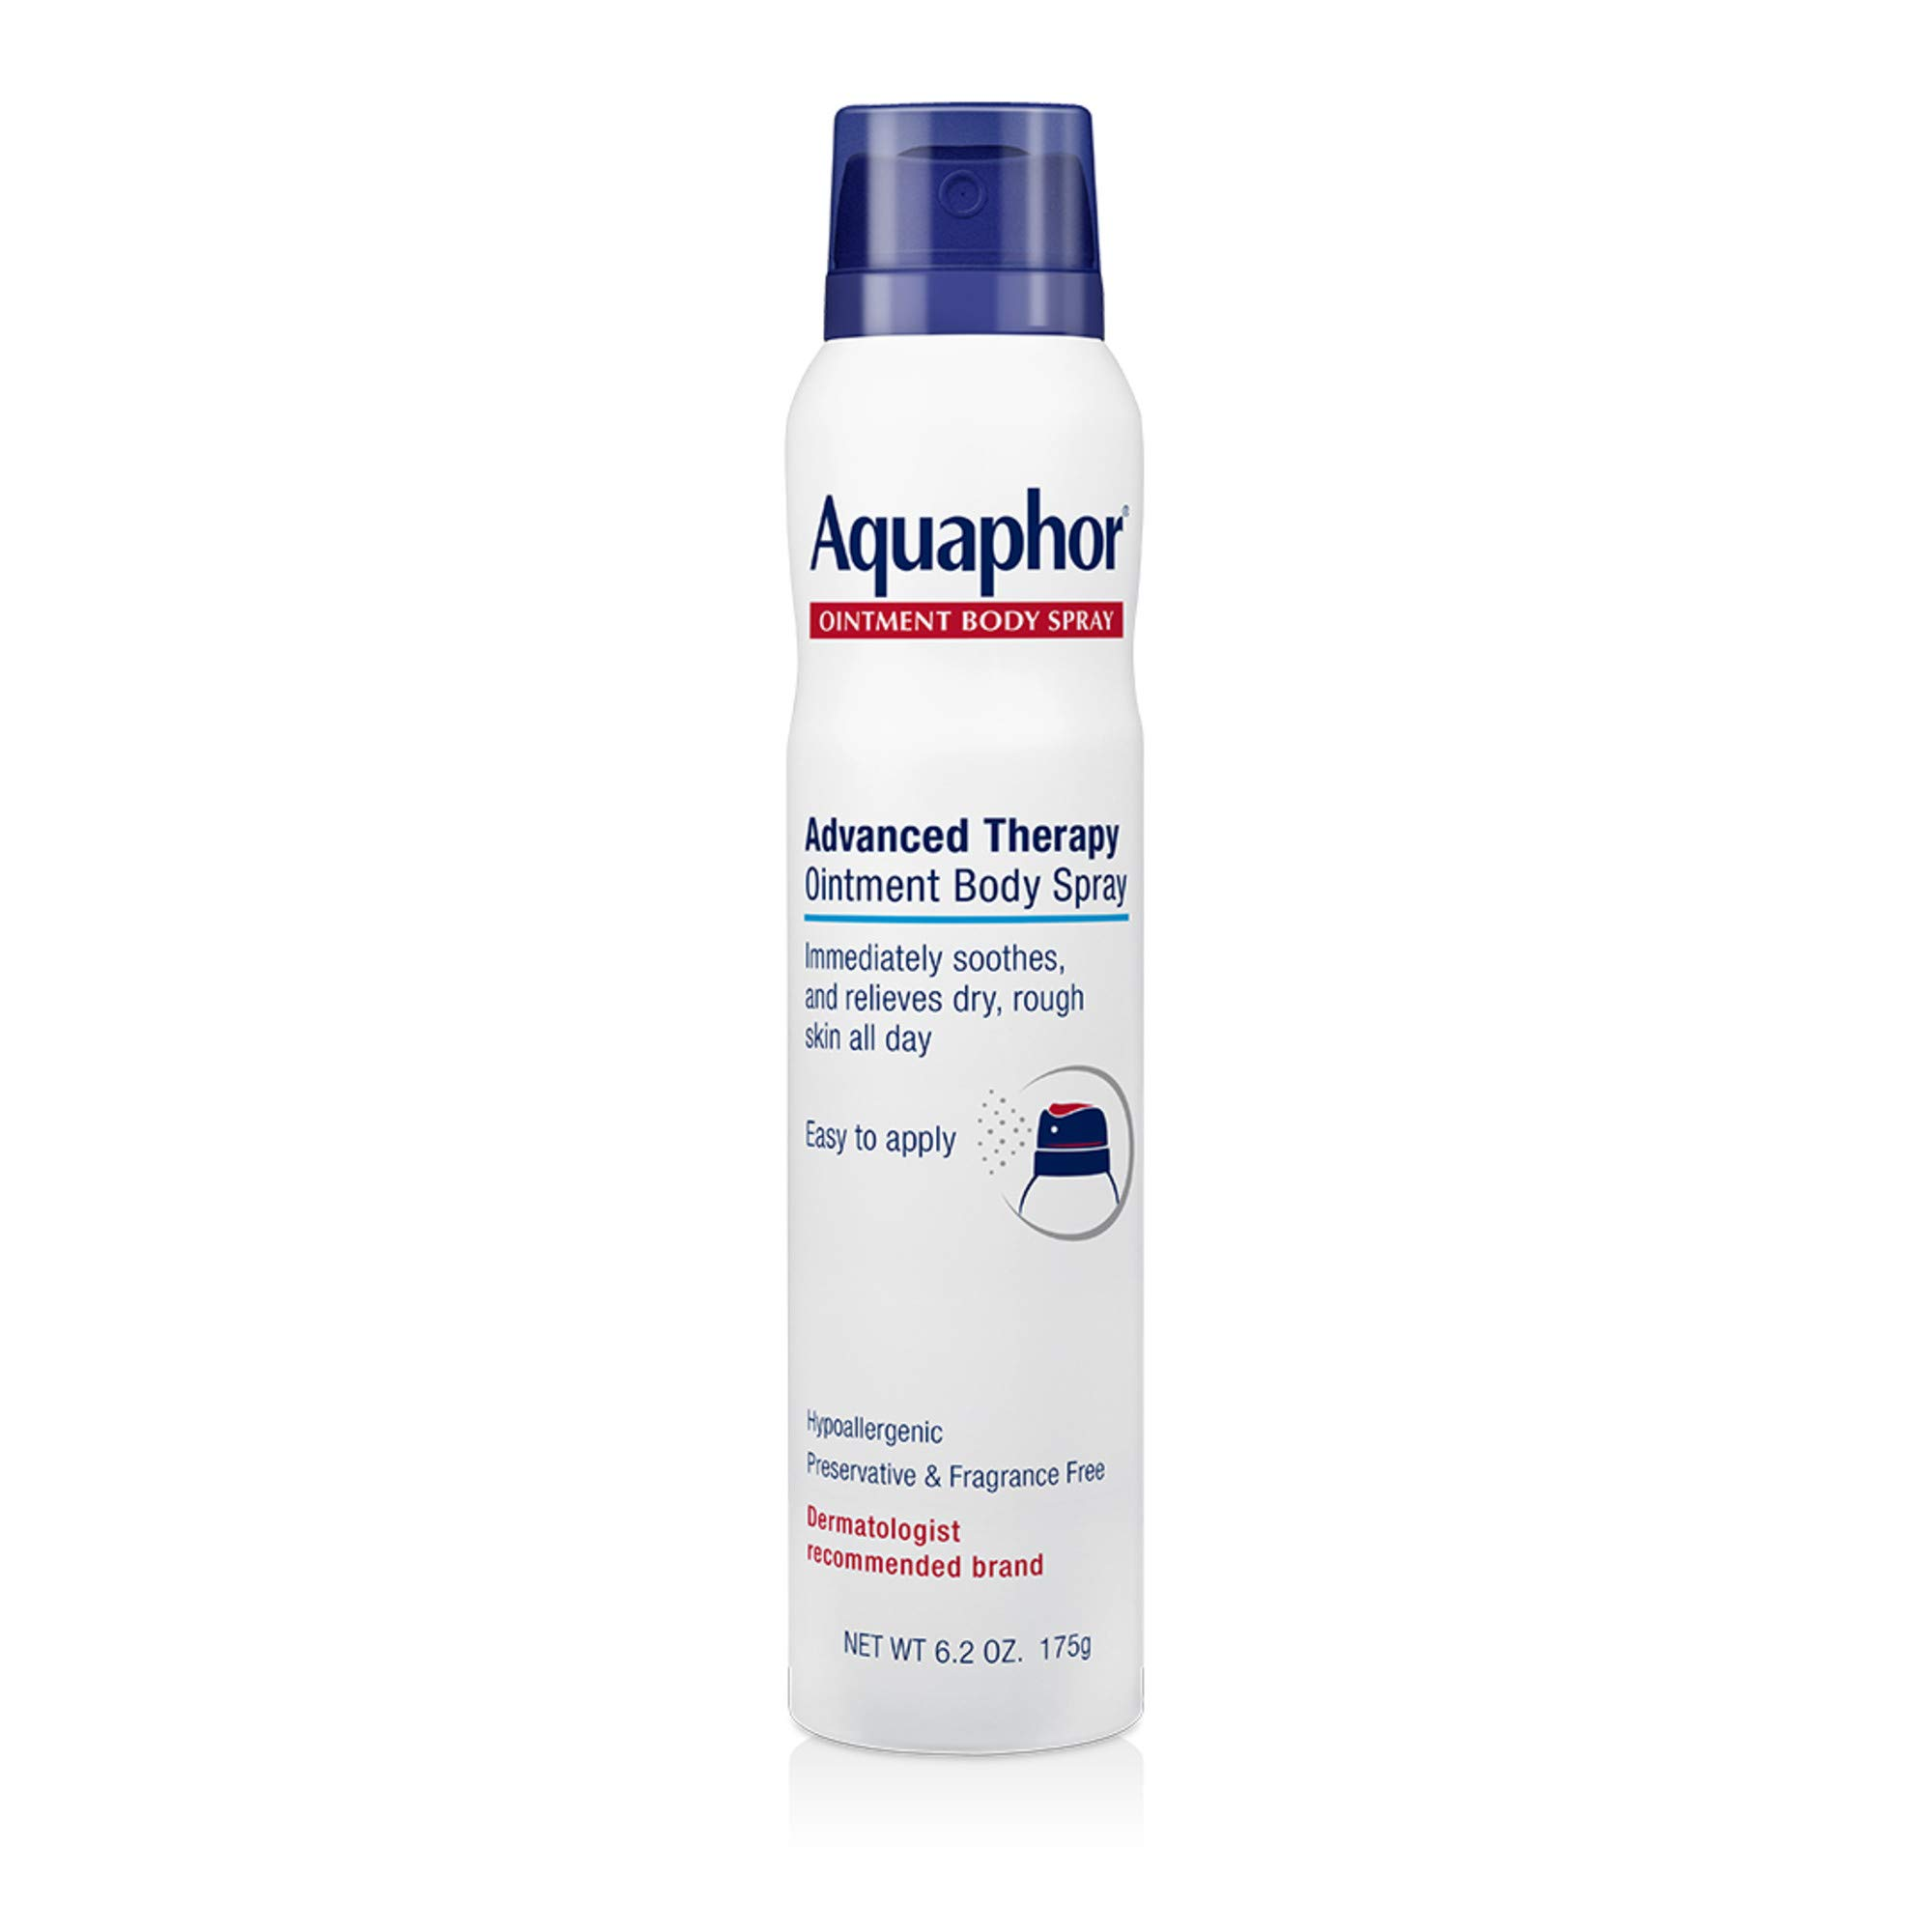 Aquaphor Ointment Body Spray - Moisturizes and Heals Dry, Rough Skin - 6.2 oz. Spray Can by Aquaphor